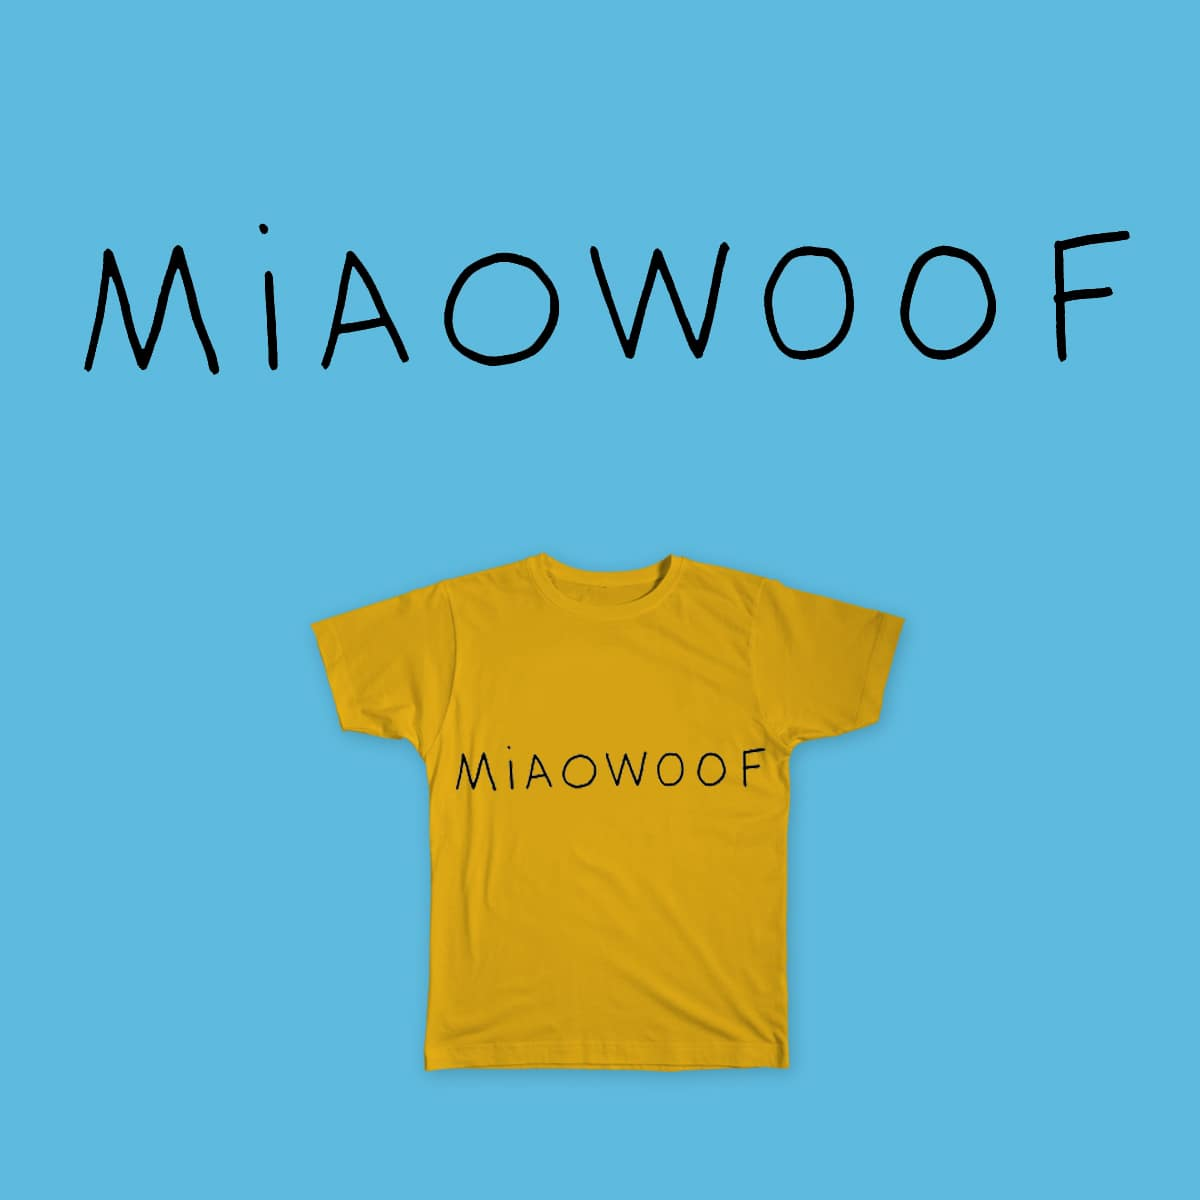 MIAOWOOF by Tom_Lowery on Threadless